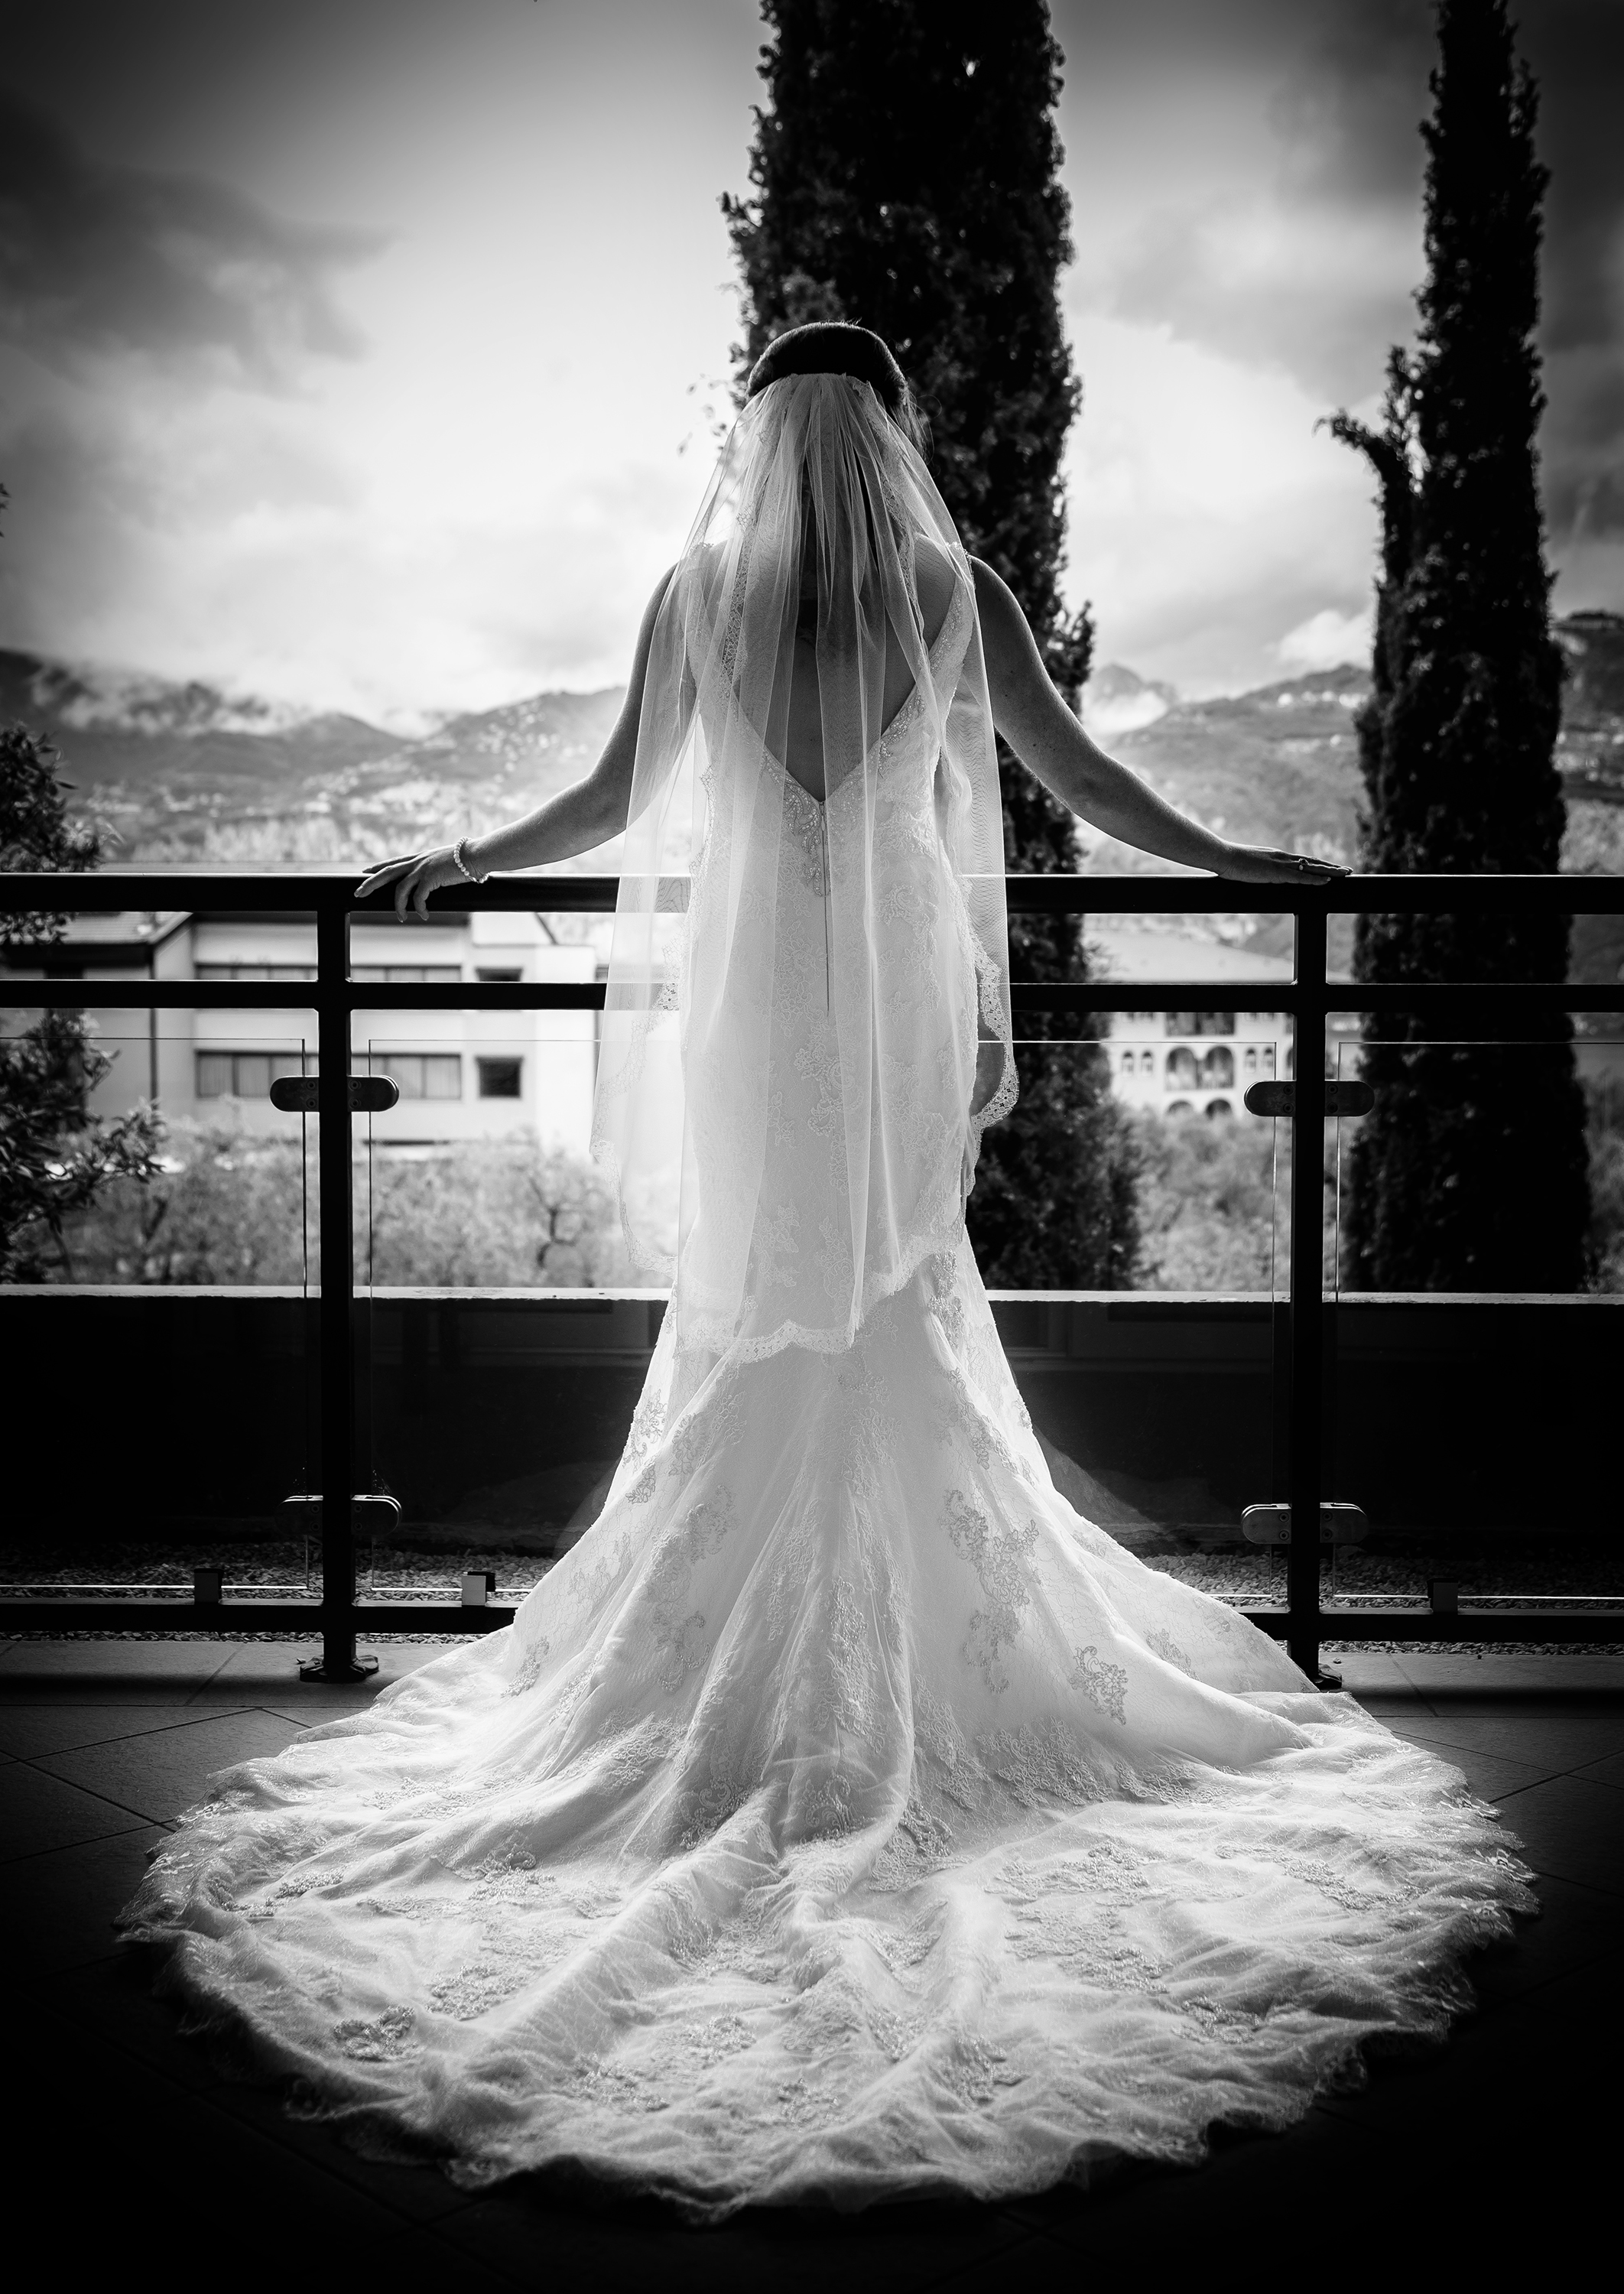 Black and White image of a bride wearing her wedding dress shot in Italy